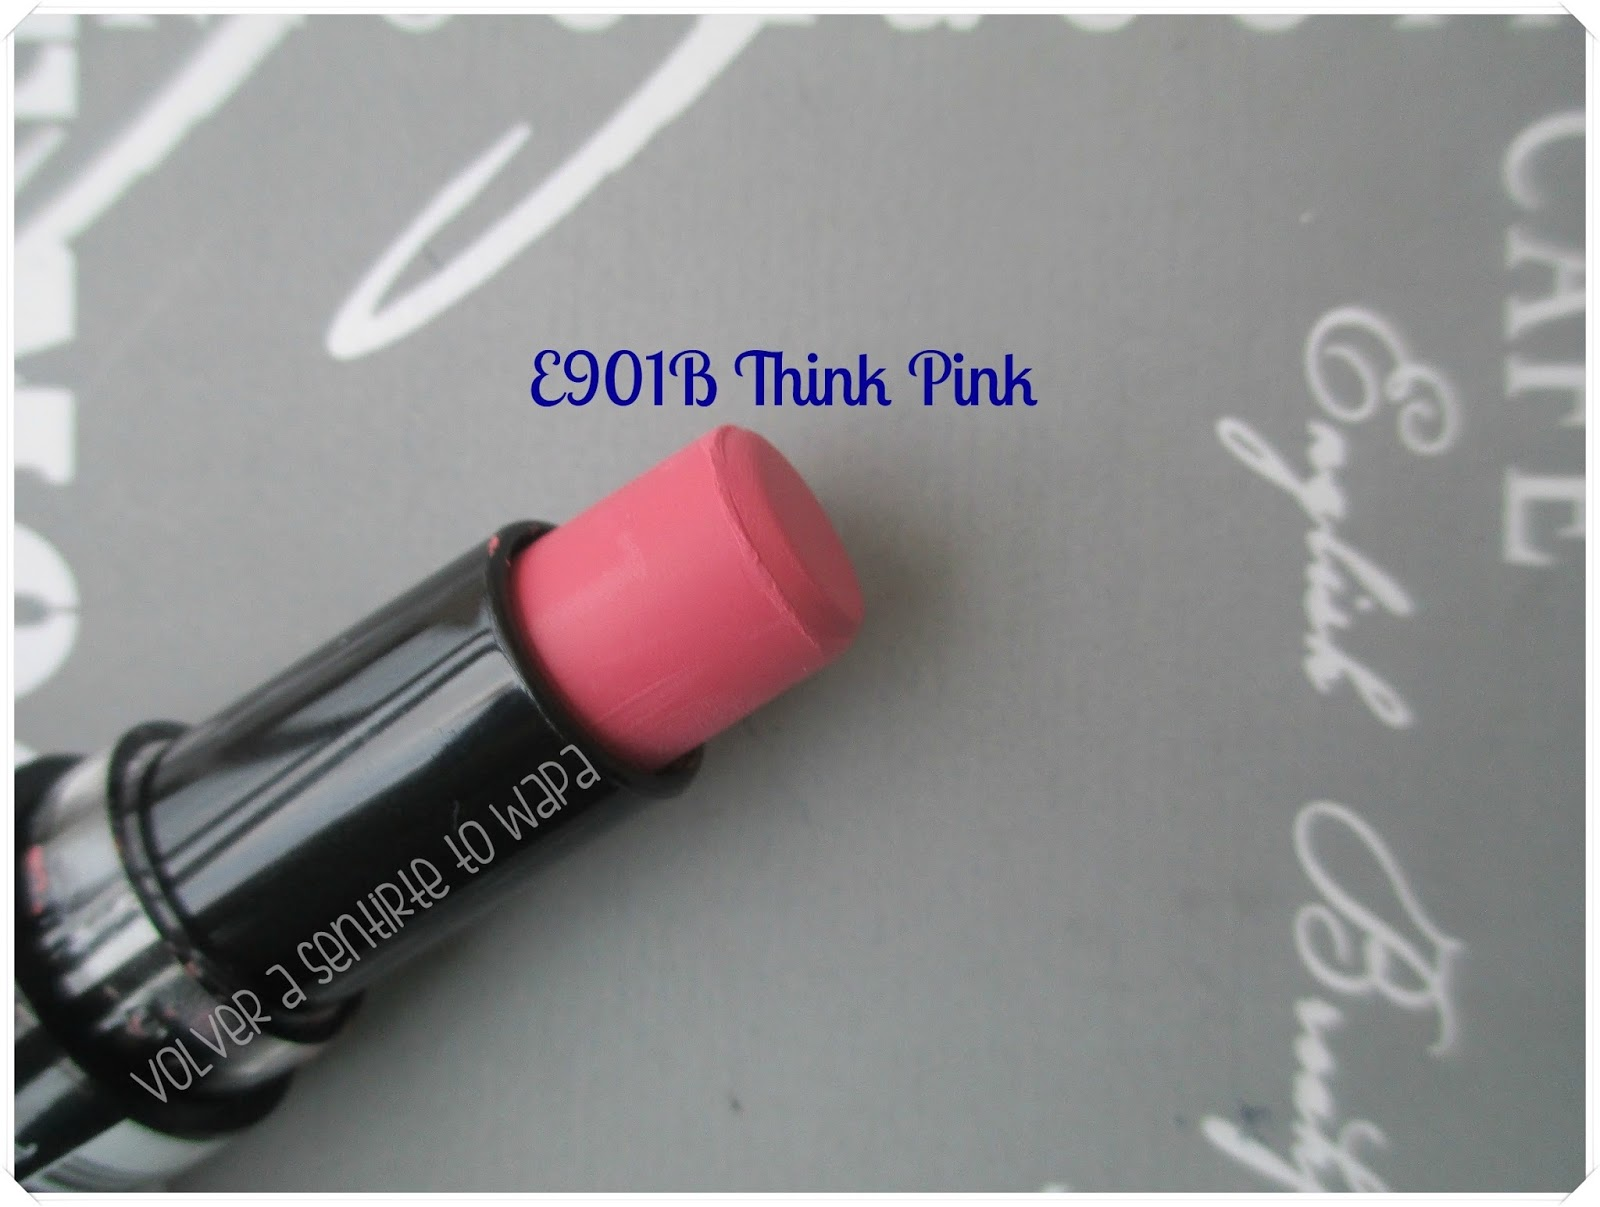 Labiales MegaLast Lip Color de Wet n' Wild - E901B Think Pink